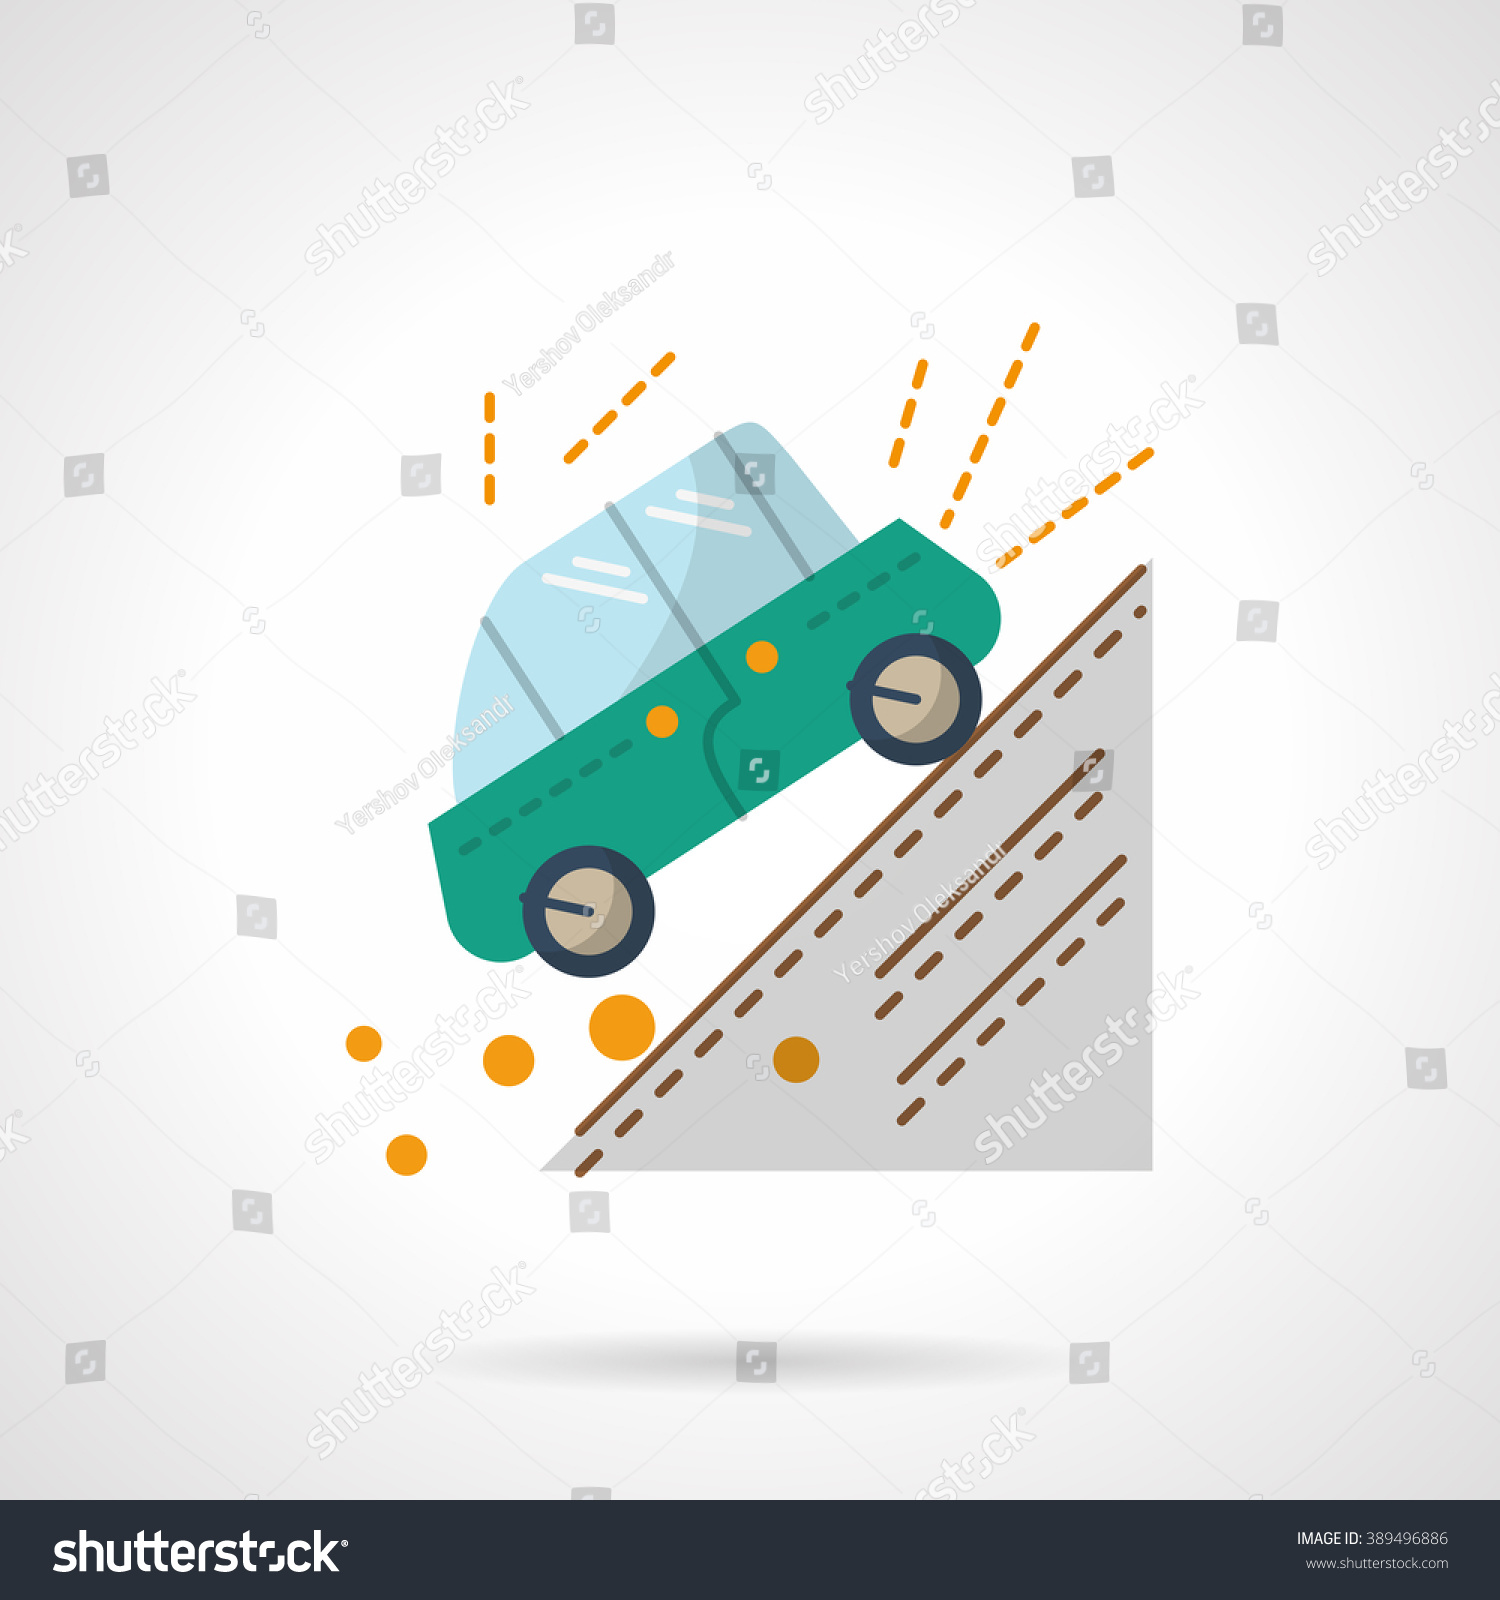 Green Car Moving Down Slope Accident Stock Vector (Royalty Free ...